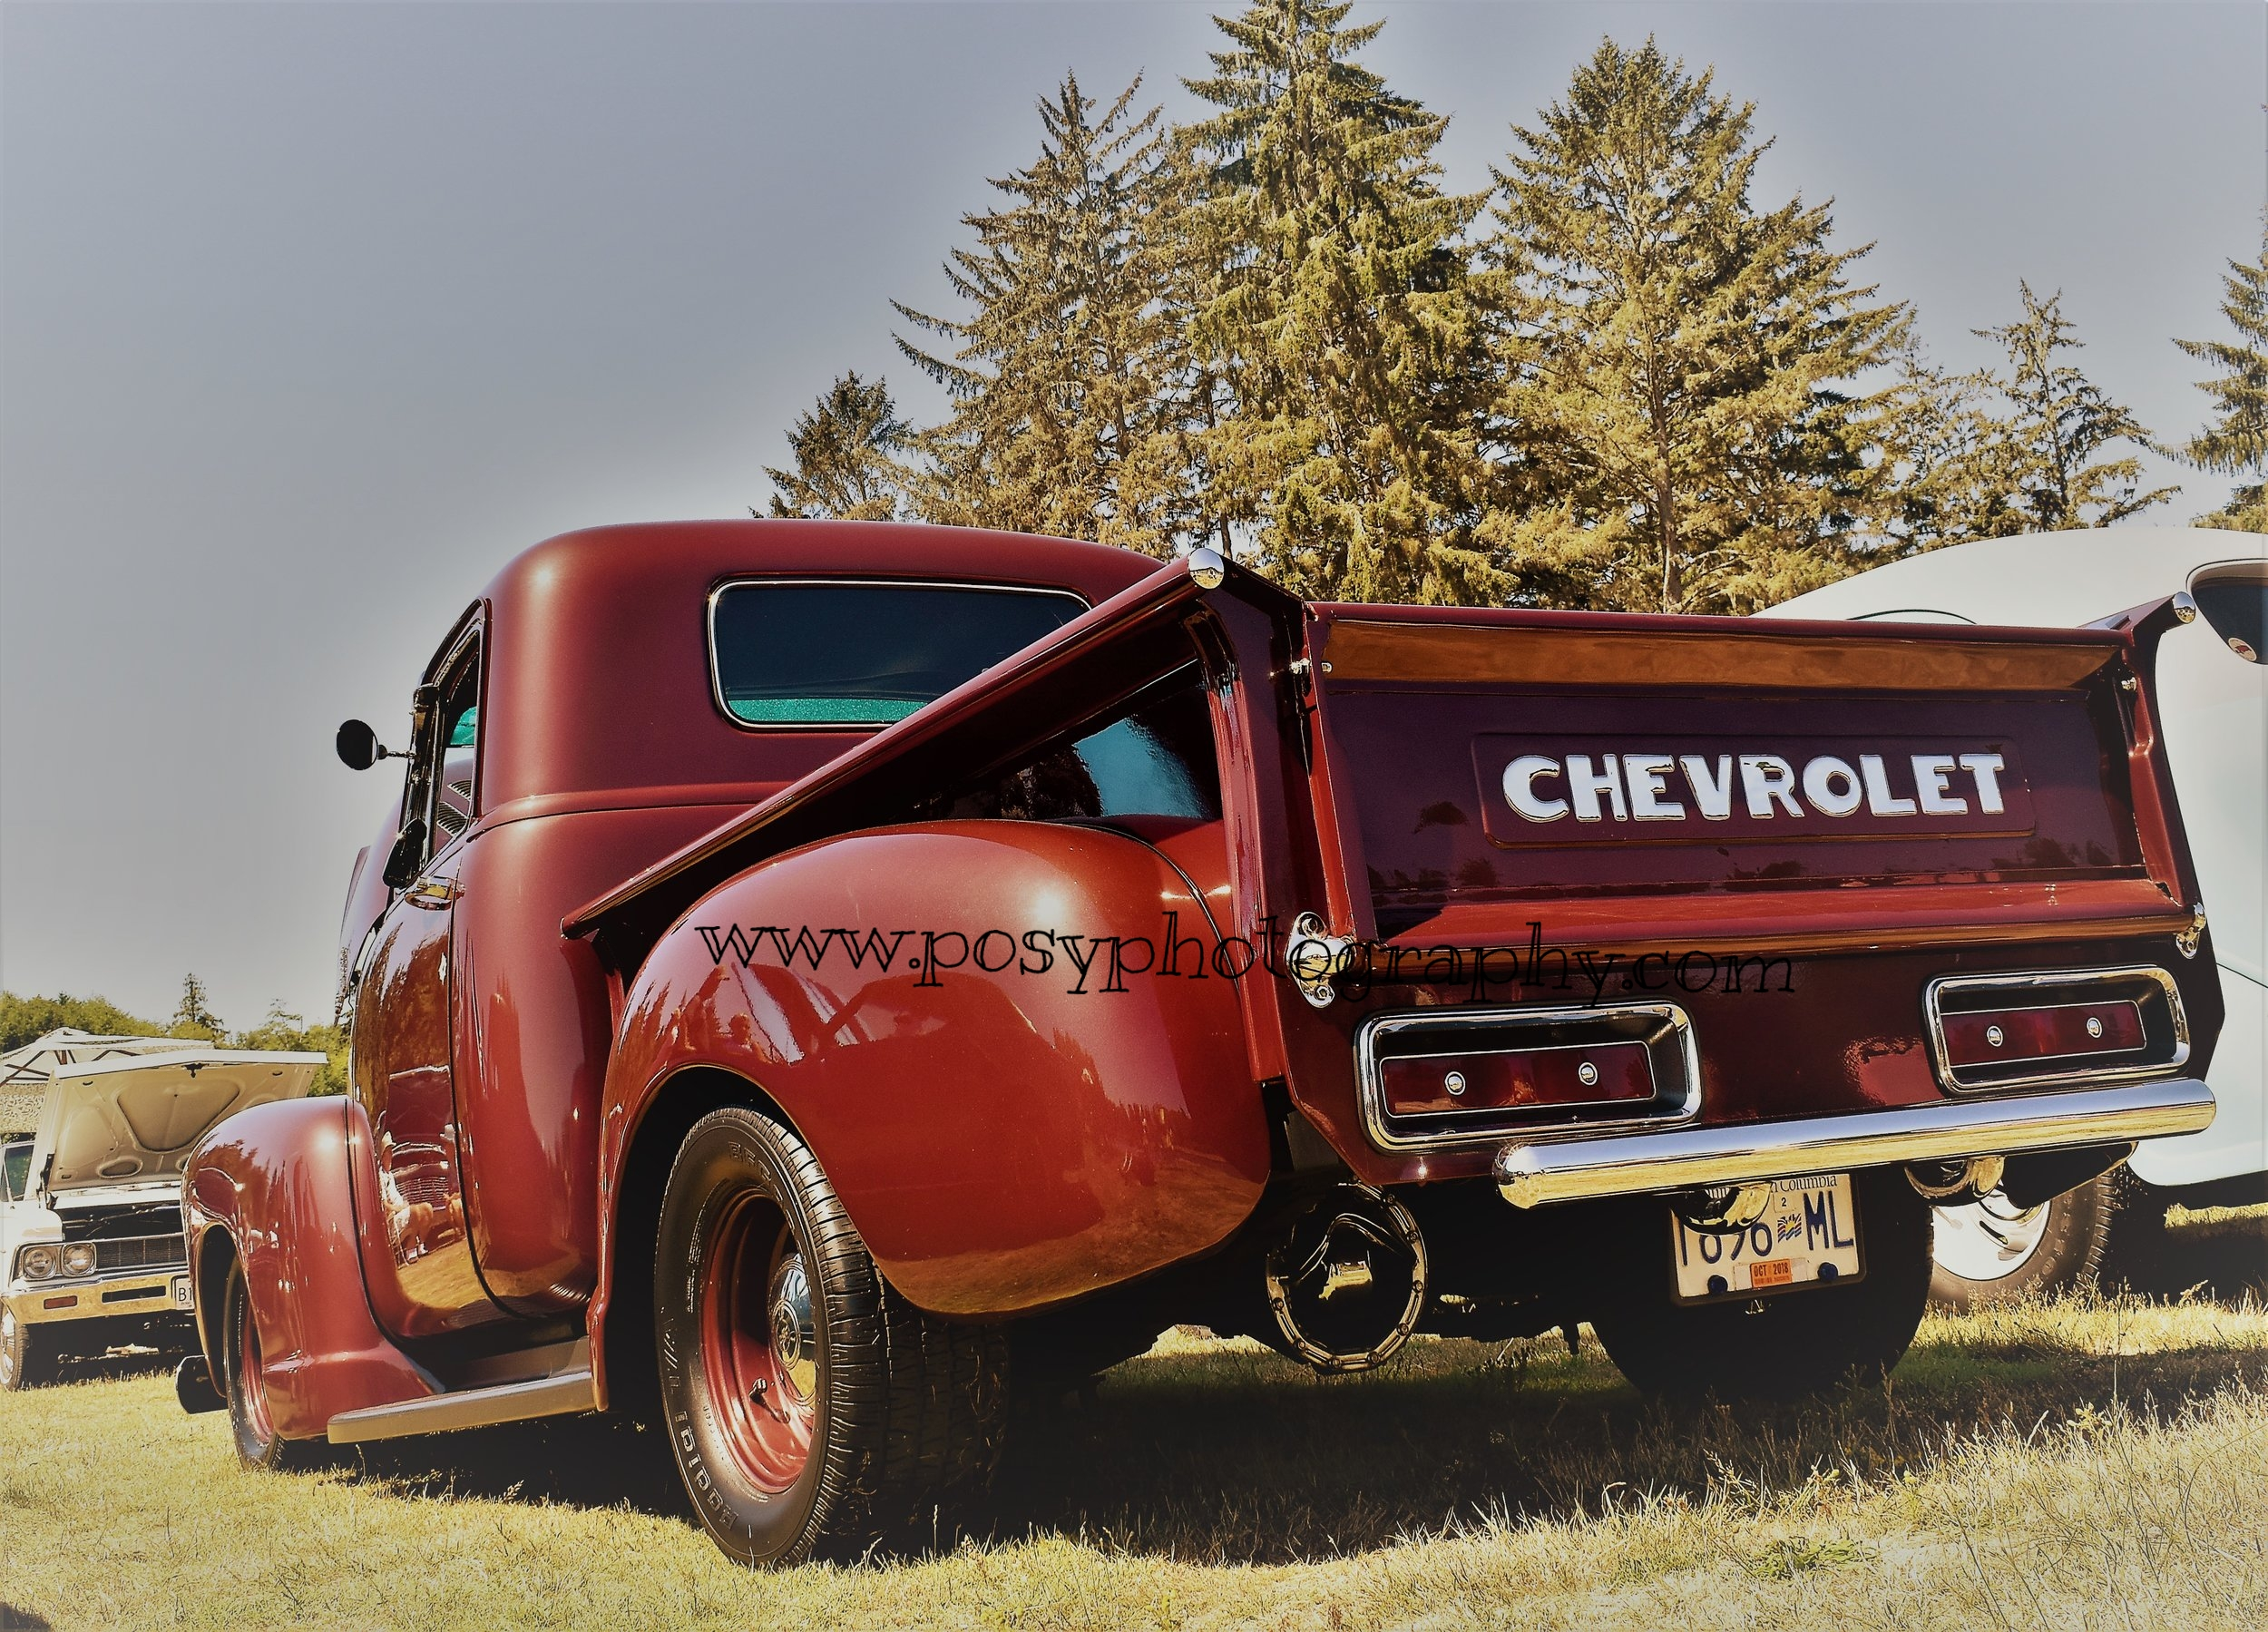 Chevy truck - truck photography - Sooke, BC